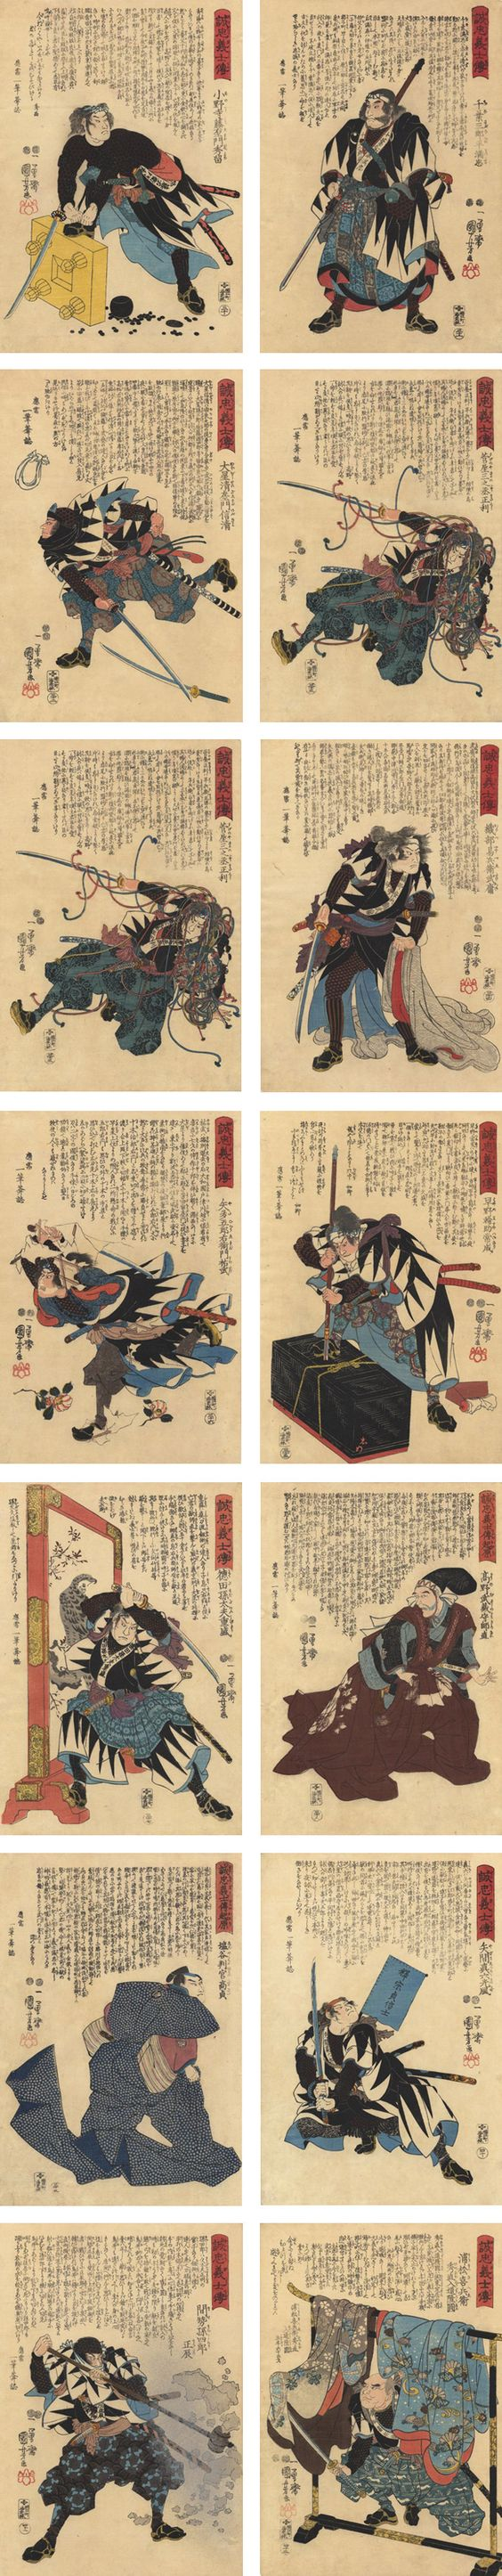 The story of the 47 Ronin...one of the most popular stories about the warrior-class Samurai.